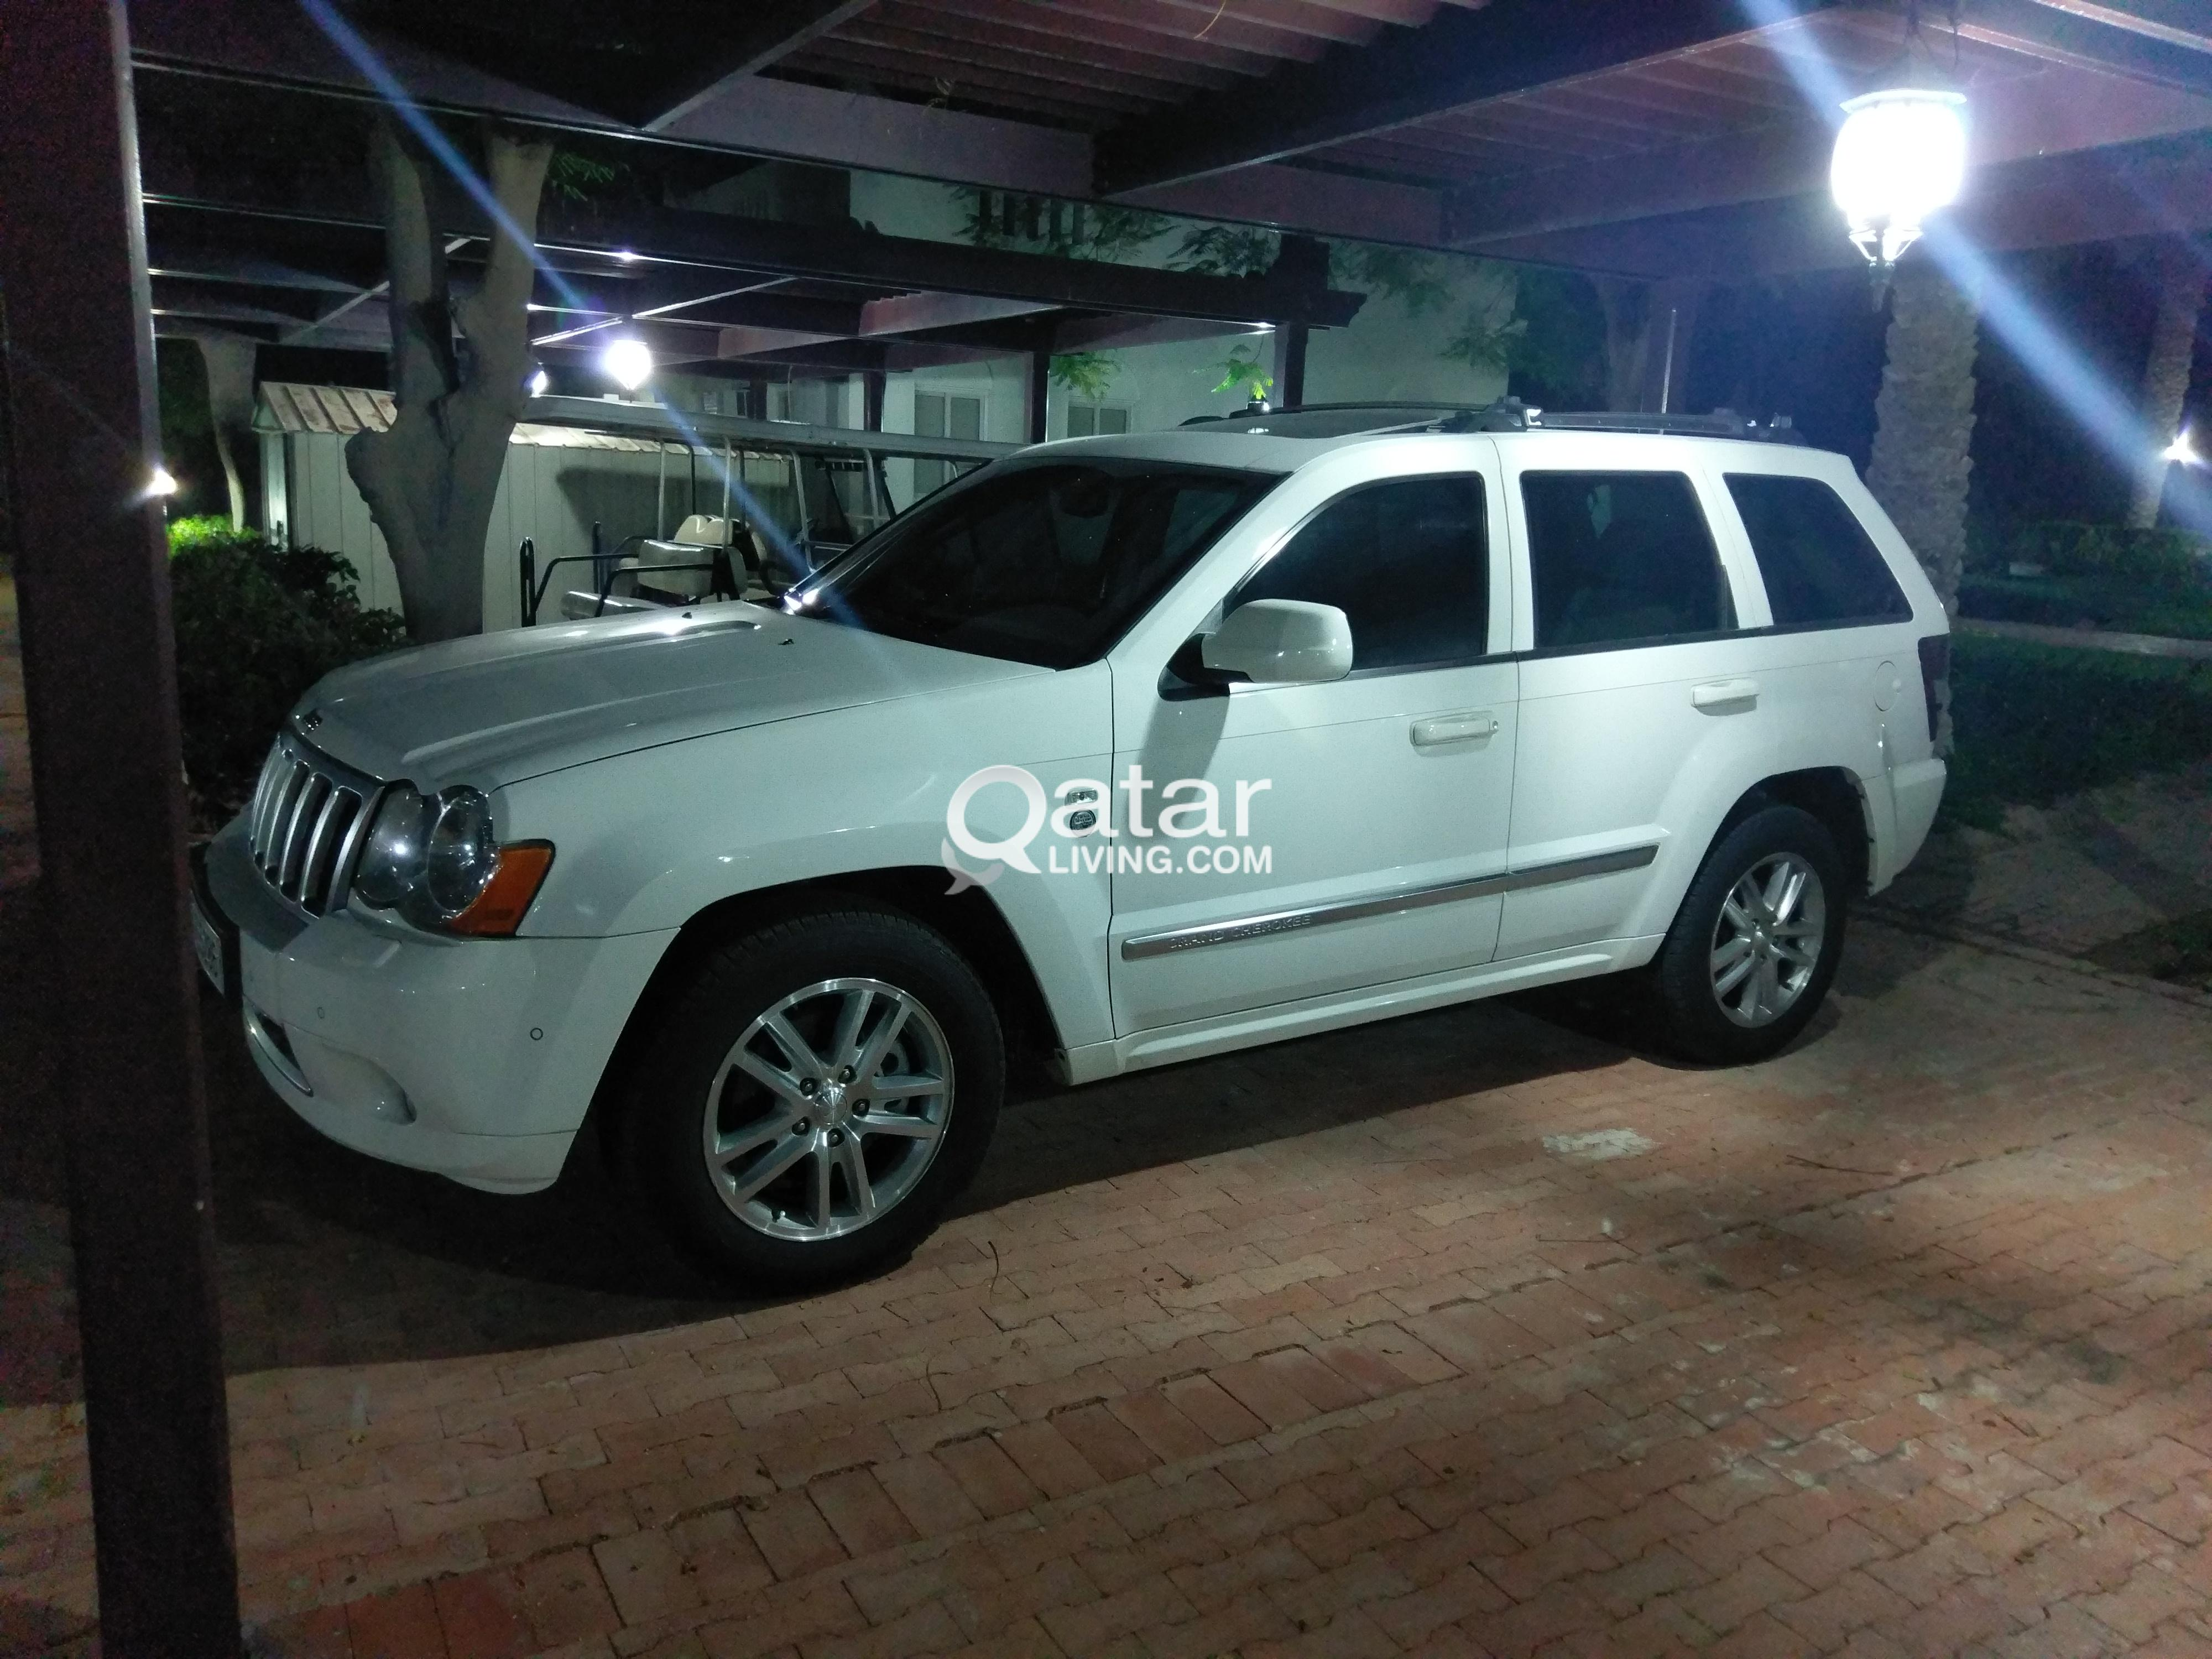 pre sport utility jeep inventory used cherokee certified overland grand owned